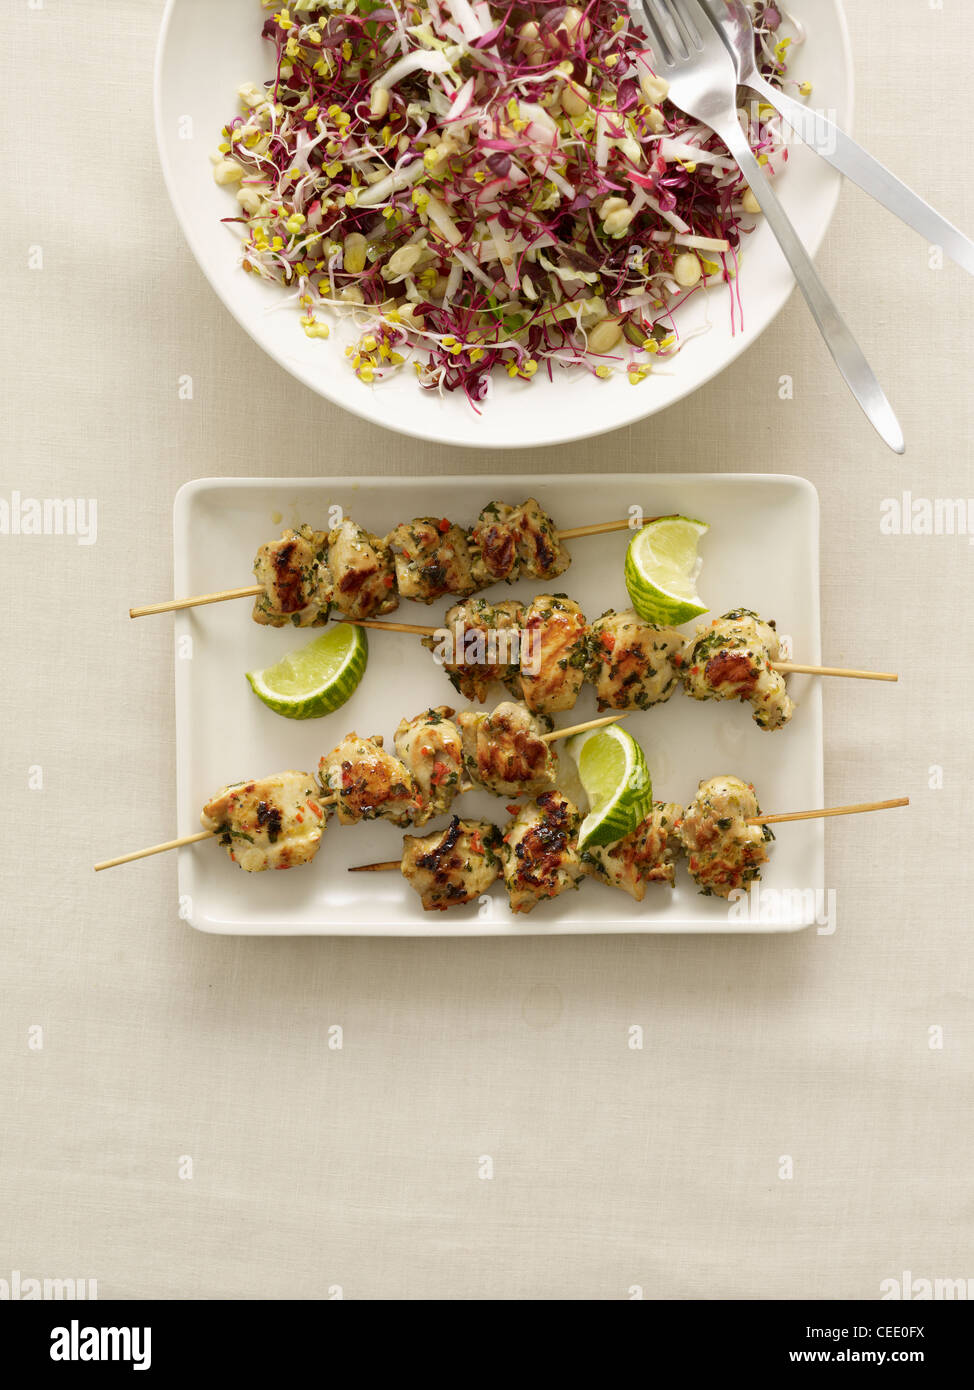 chicken skewers satay sticks limes overhead view - Stock Image